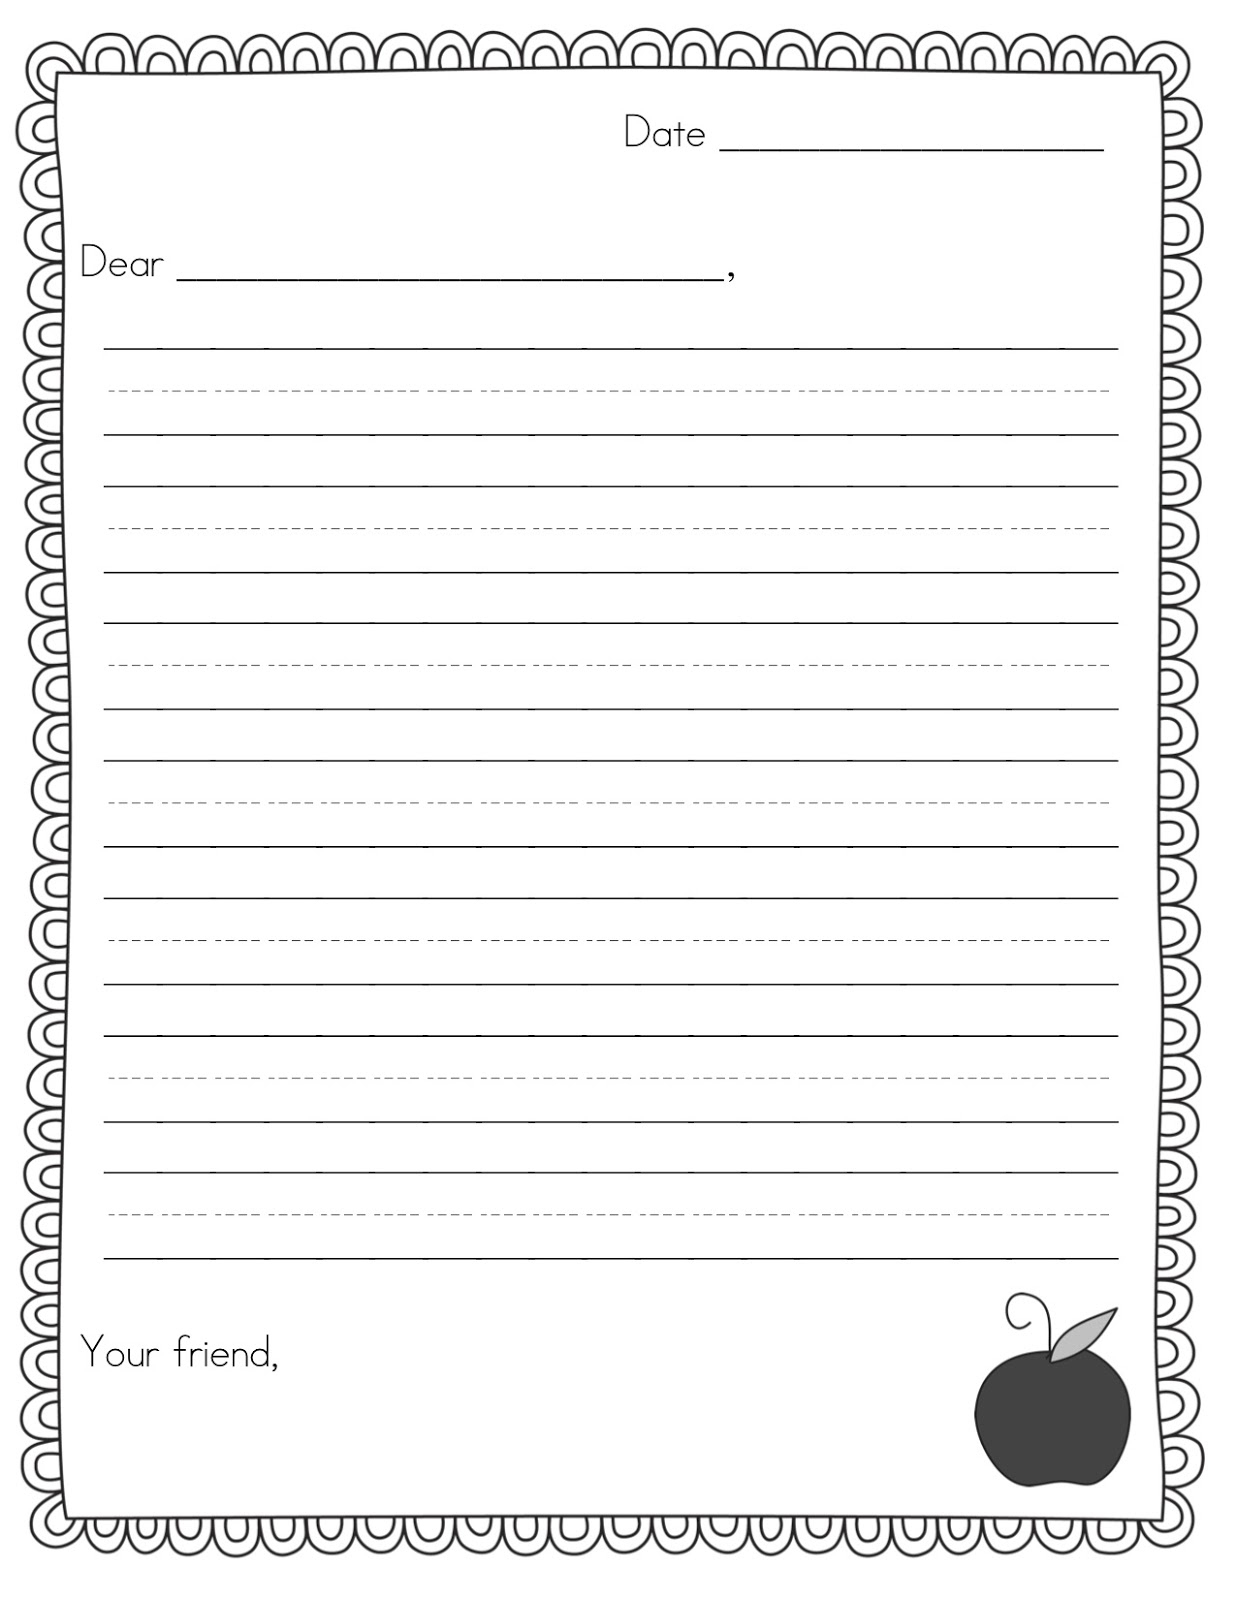 Pen Pal News + Friendly Letter Freebie - Teacher Idea Factory - Free Printable Letter Writing Templates